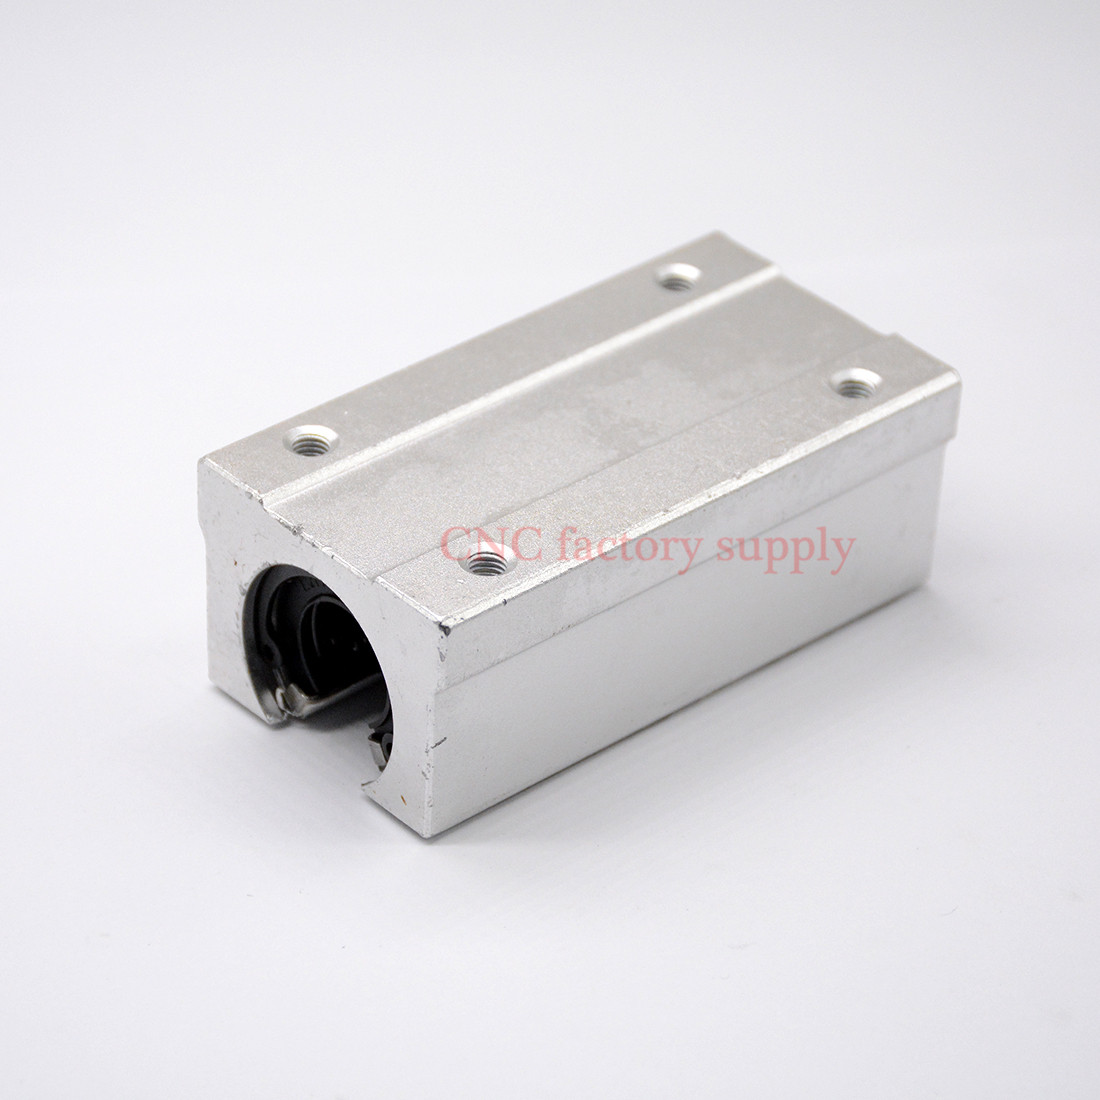 Free shipping SBR35LUU 35mm Linear Ball Bearing Block CNC Router free shipping sc16vuu sc16v scv16uu scv16 16mm linear bearing block diy linear slide bearing units cnc router